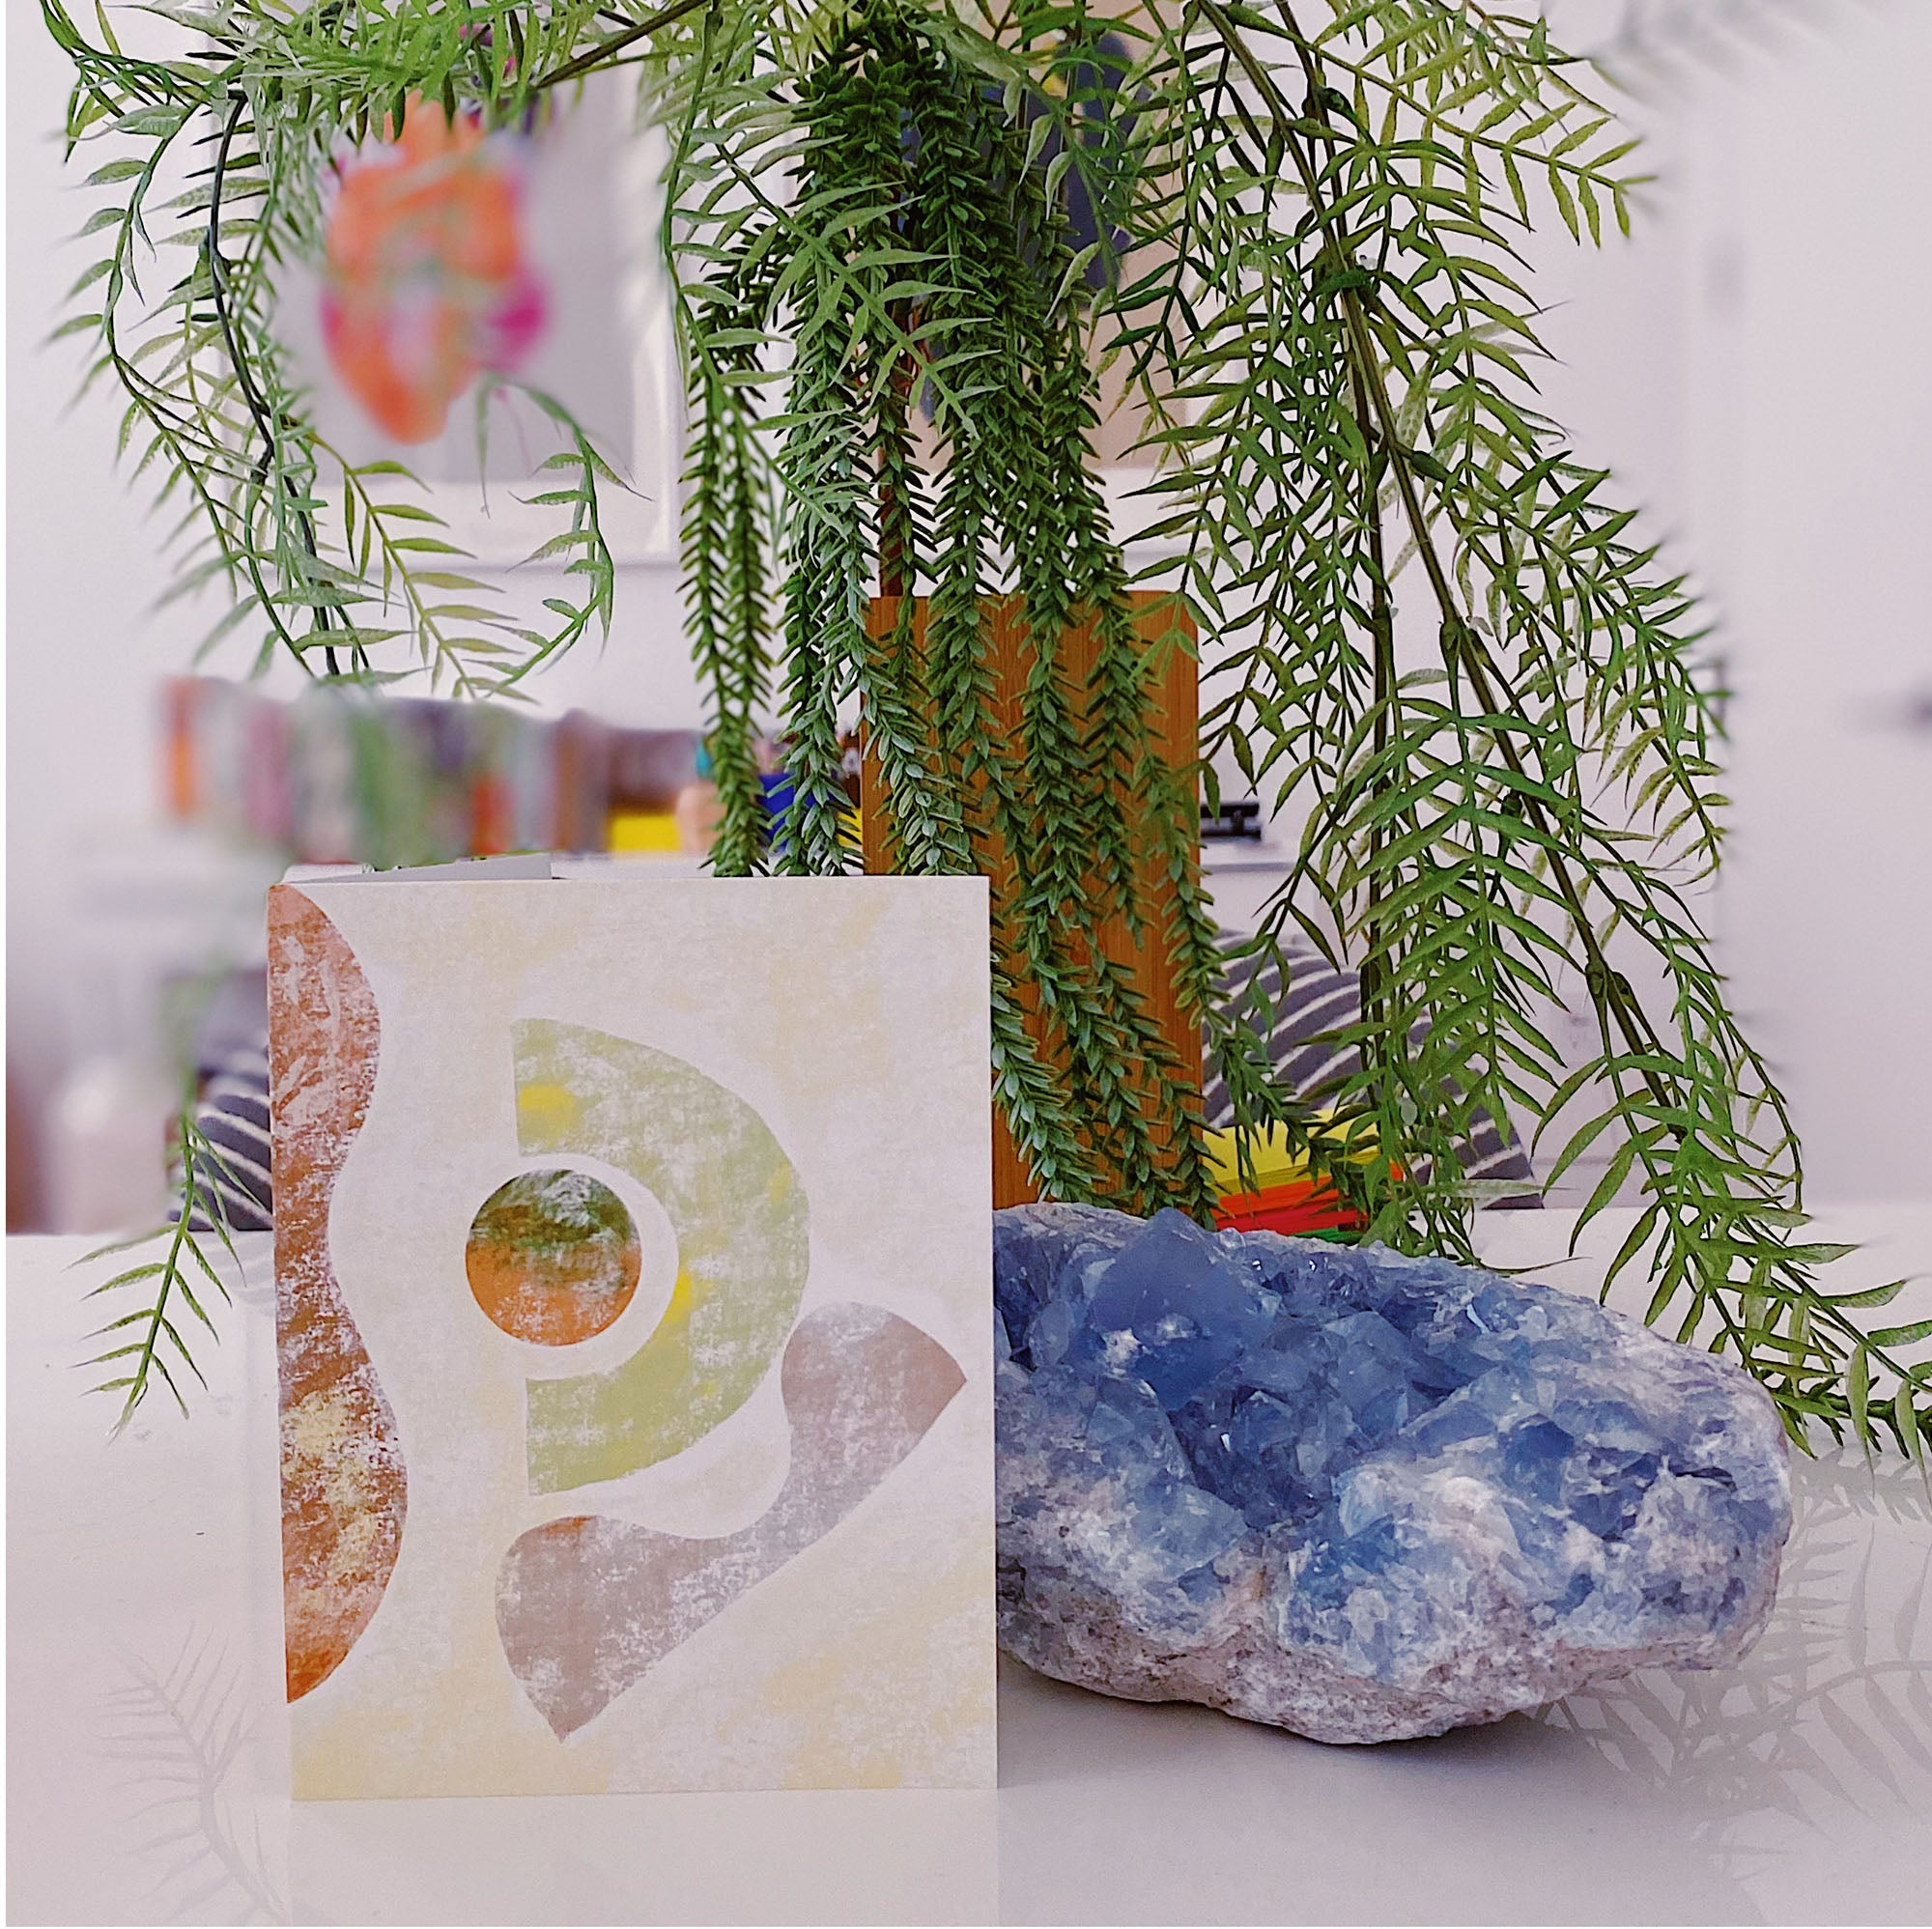 An illustrated card sits on a desk with a plant